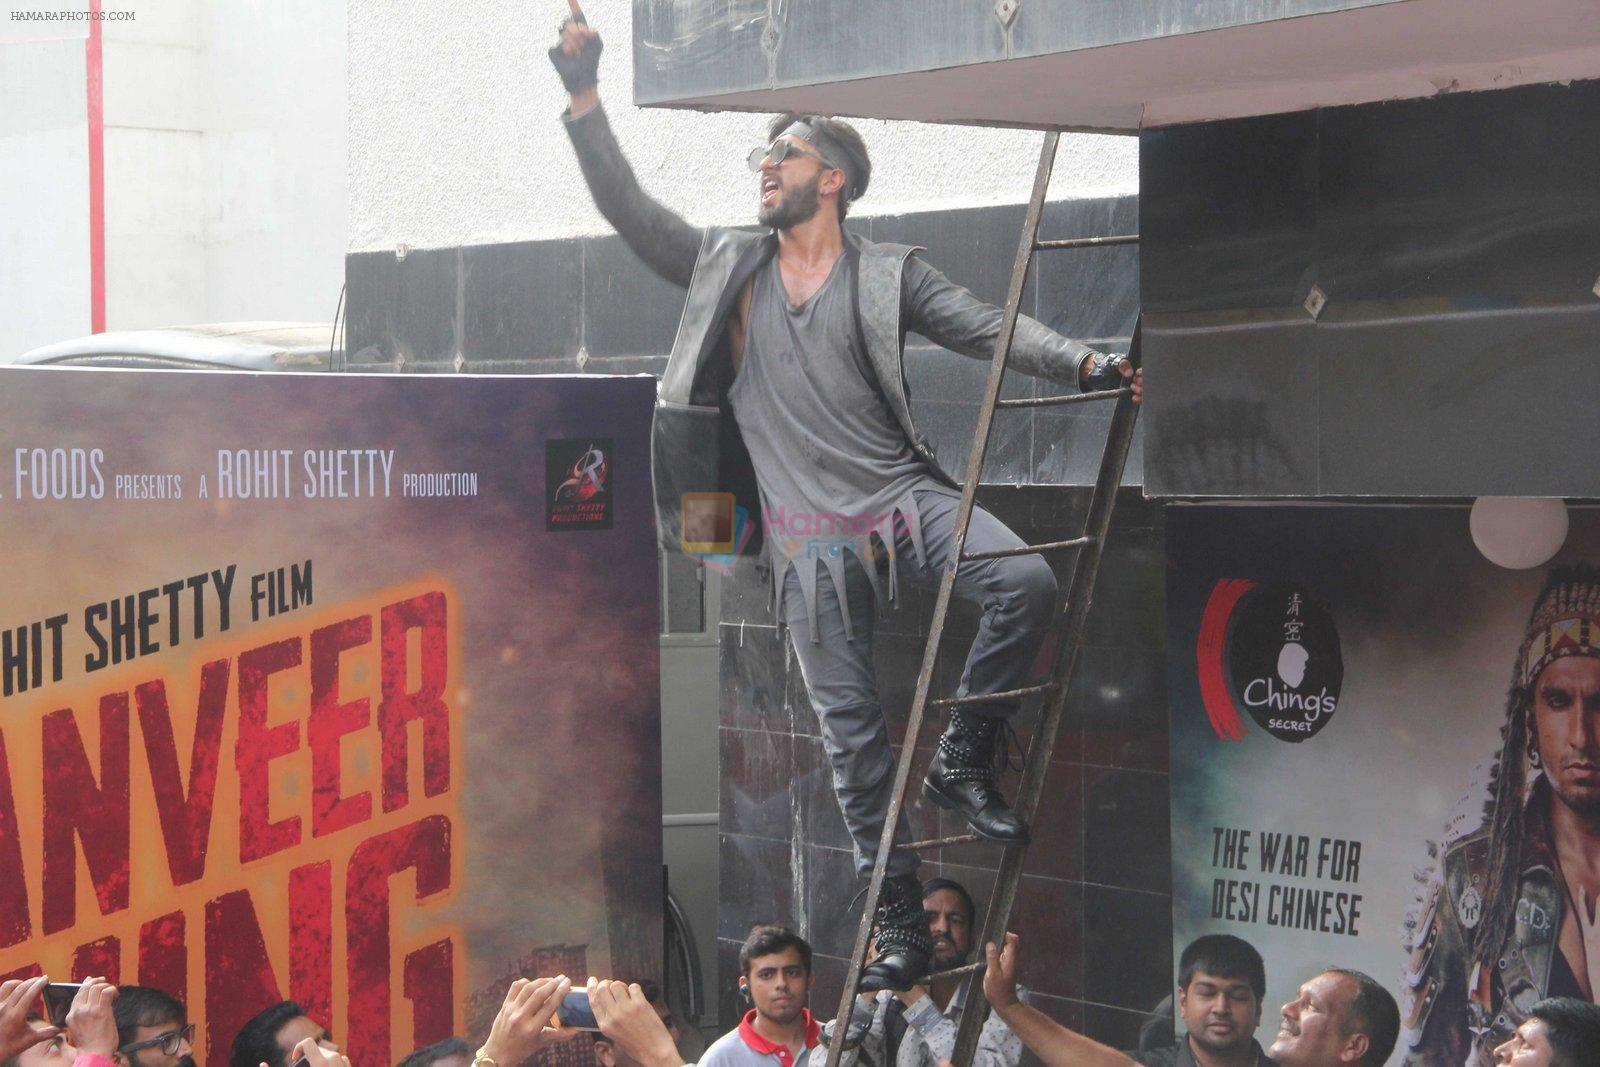 Ranveer Singh promote Ranveer Ching Returns on 19th Aug 2016